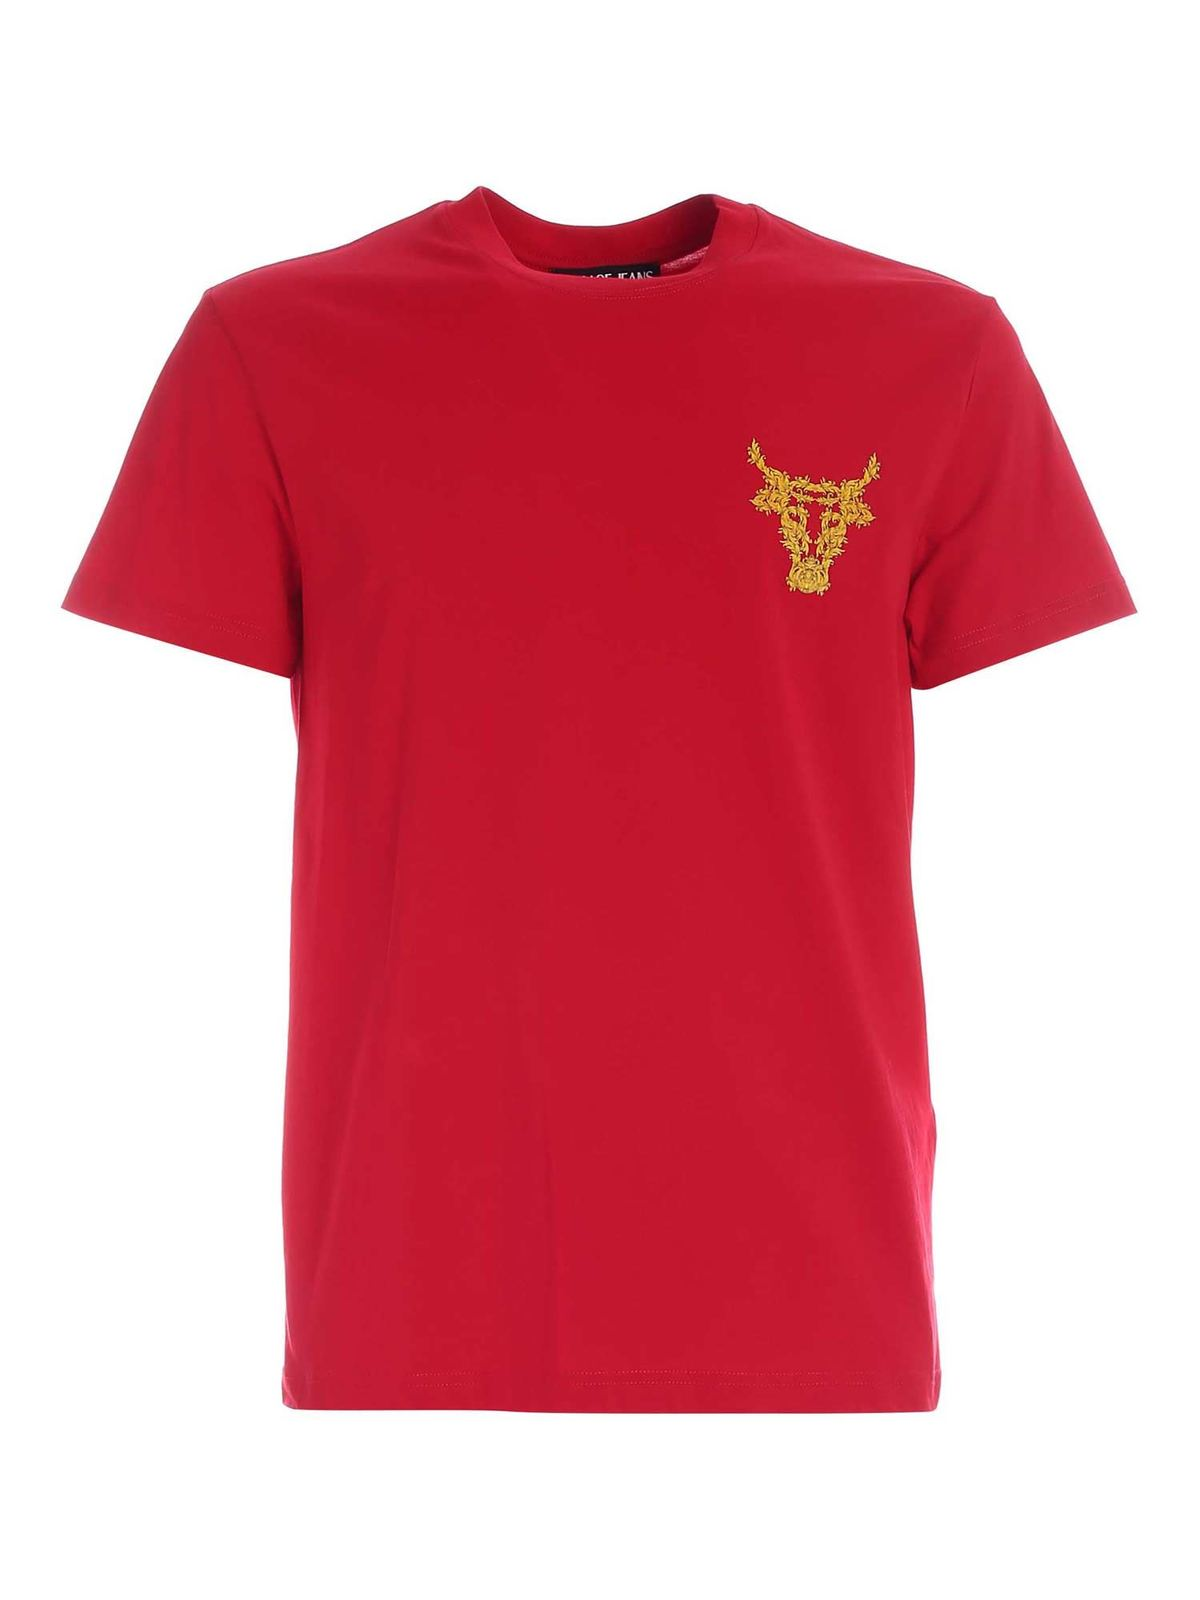 VERSACE JEANS COUTURE CAPODANNO LUNARE PATTERN T-SHIRT IN RED